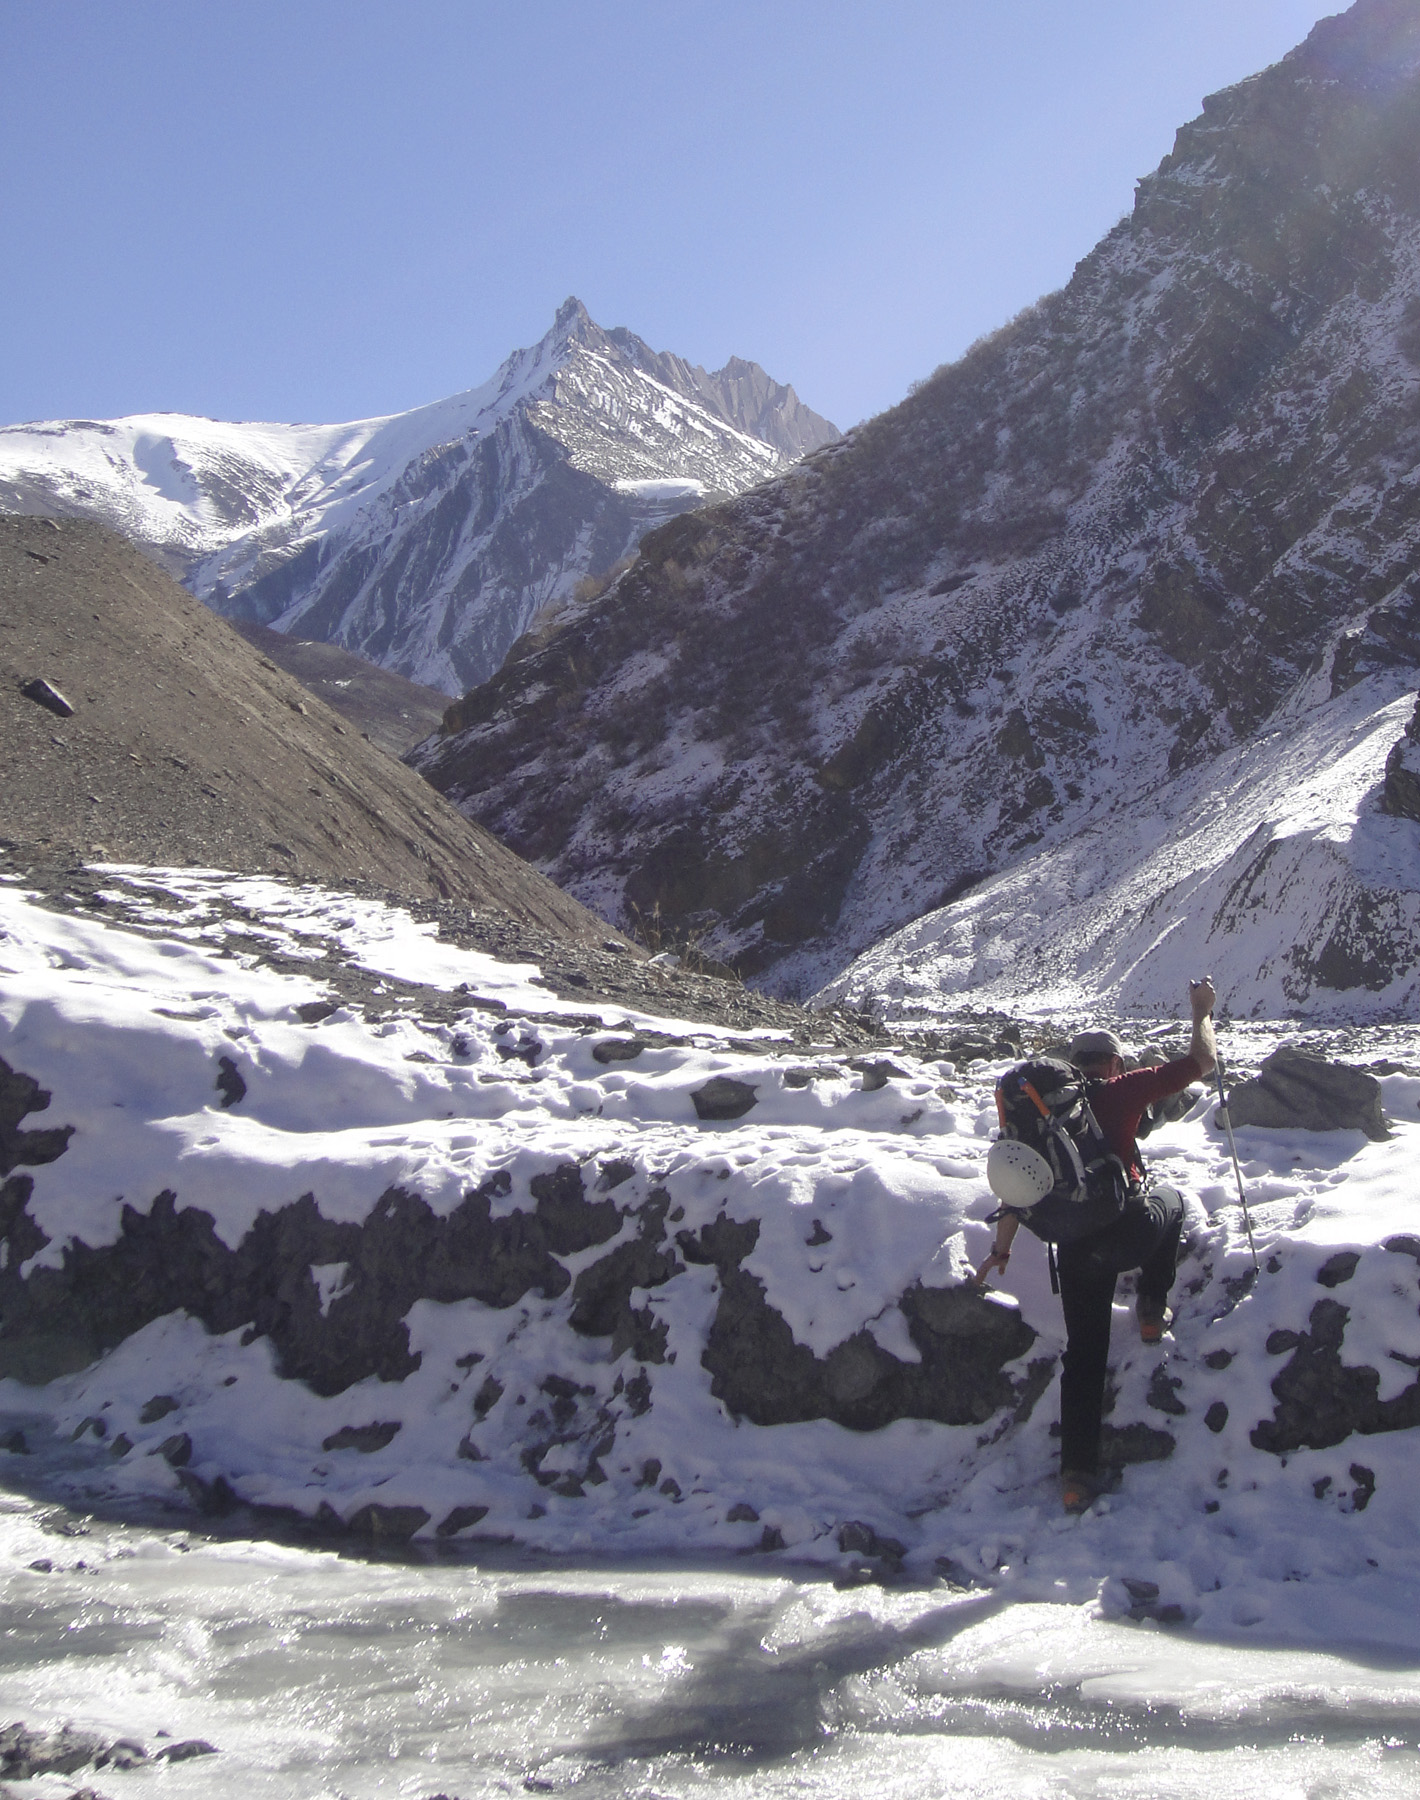 Unclimbed Peak 5,796m on the north rim of the Singekang Valley opposite Snaght Kang. It was named Lynam Peak, after the celebrated Irish mountaineer Joss Lynam. Jeremy Windsor